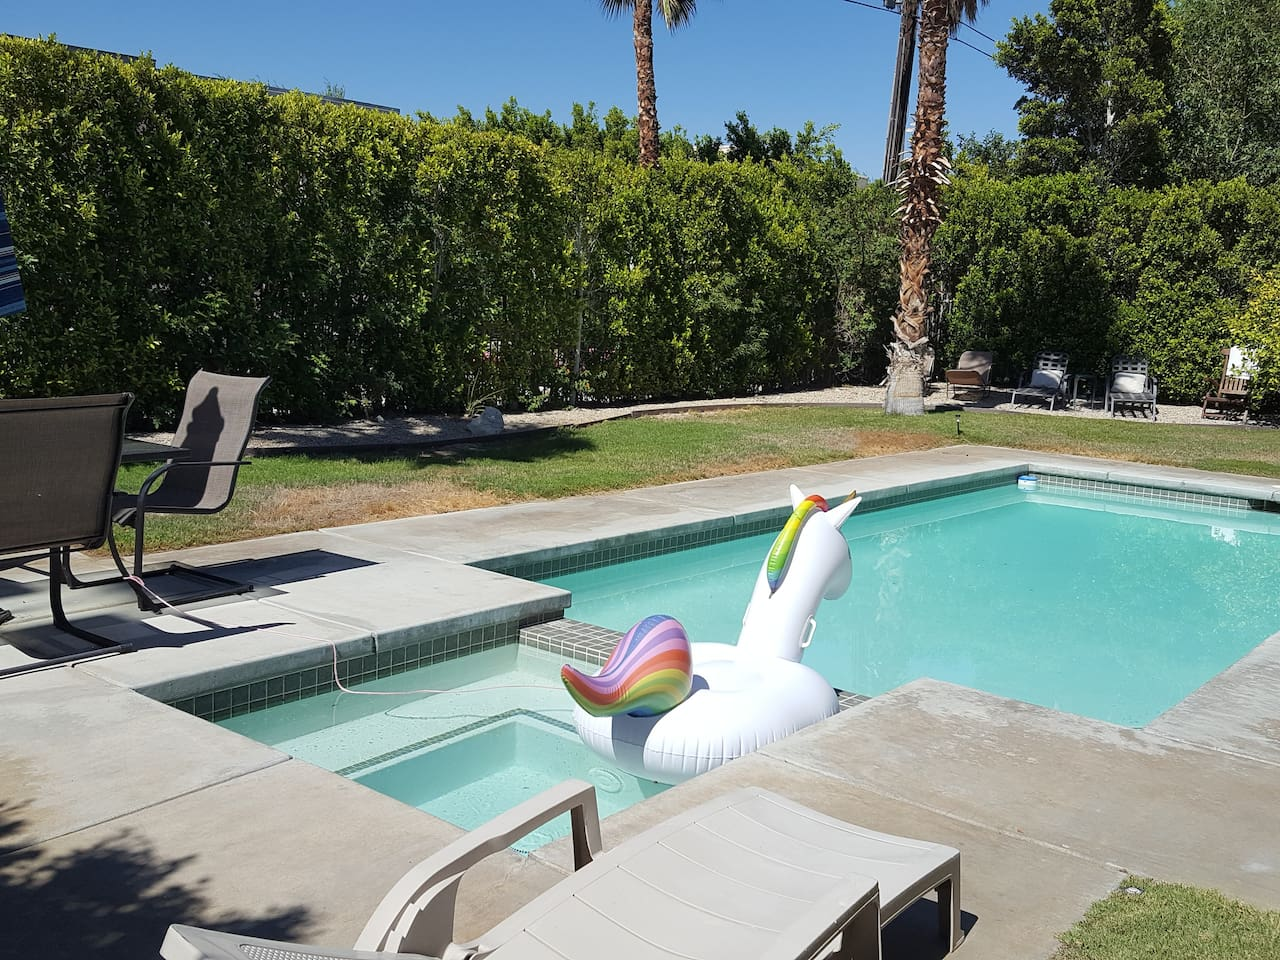 Cheap Palm Springs Airbnb with Pool